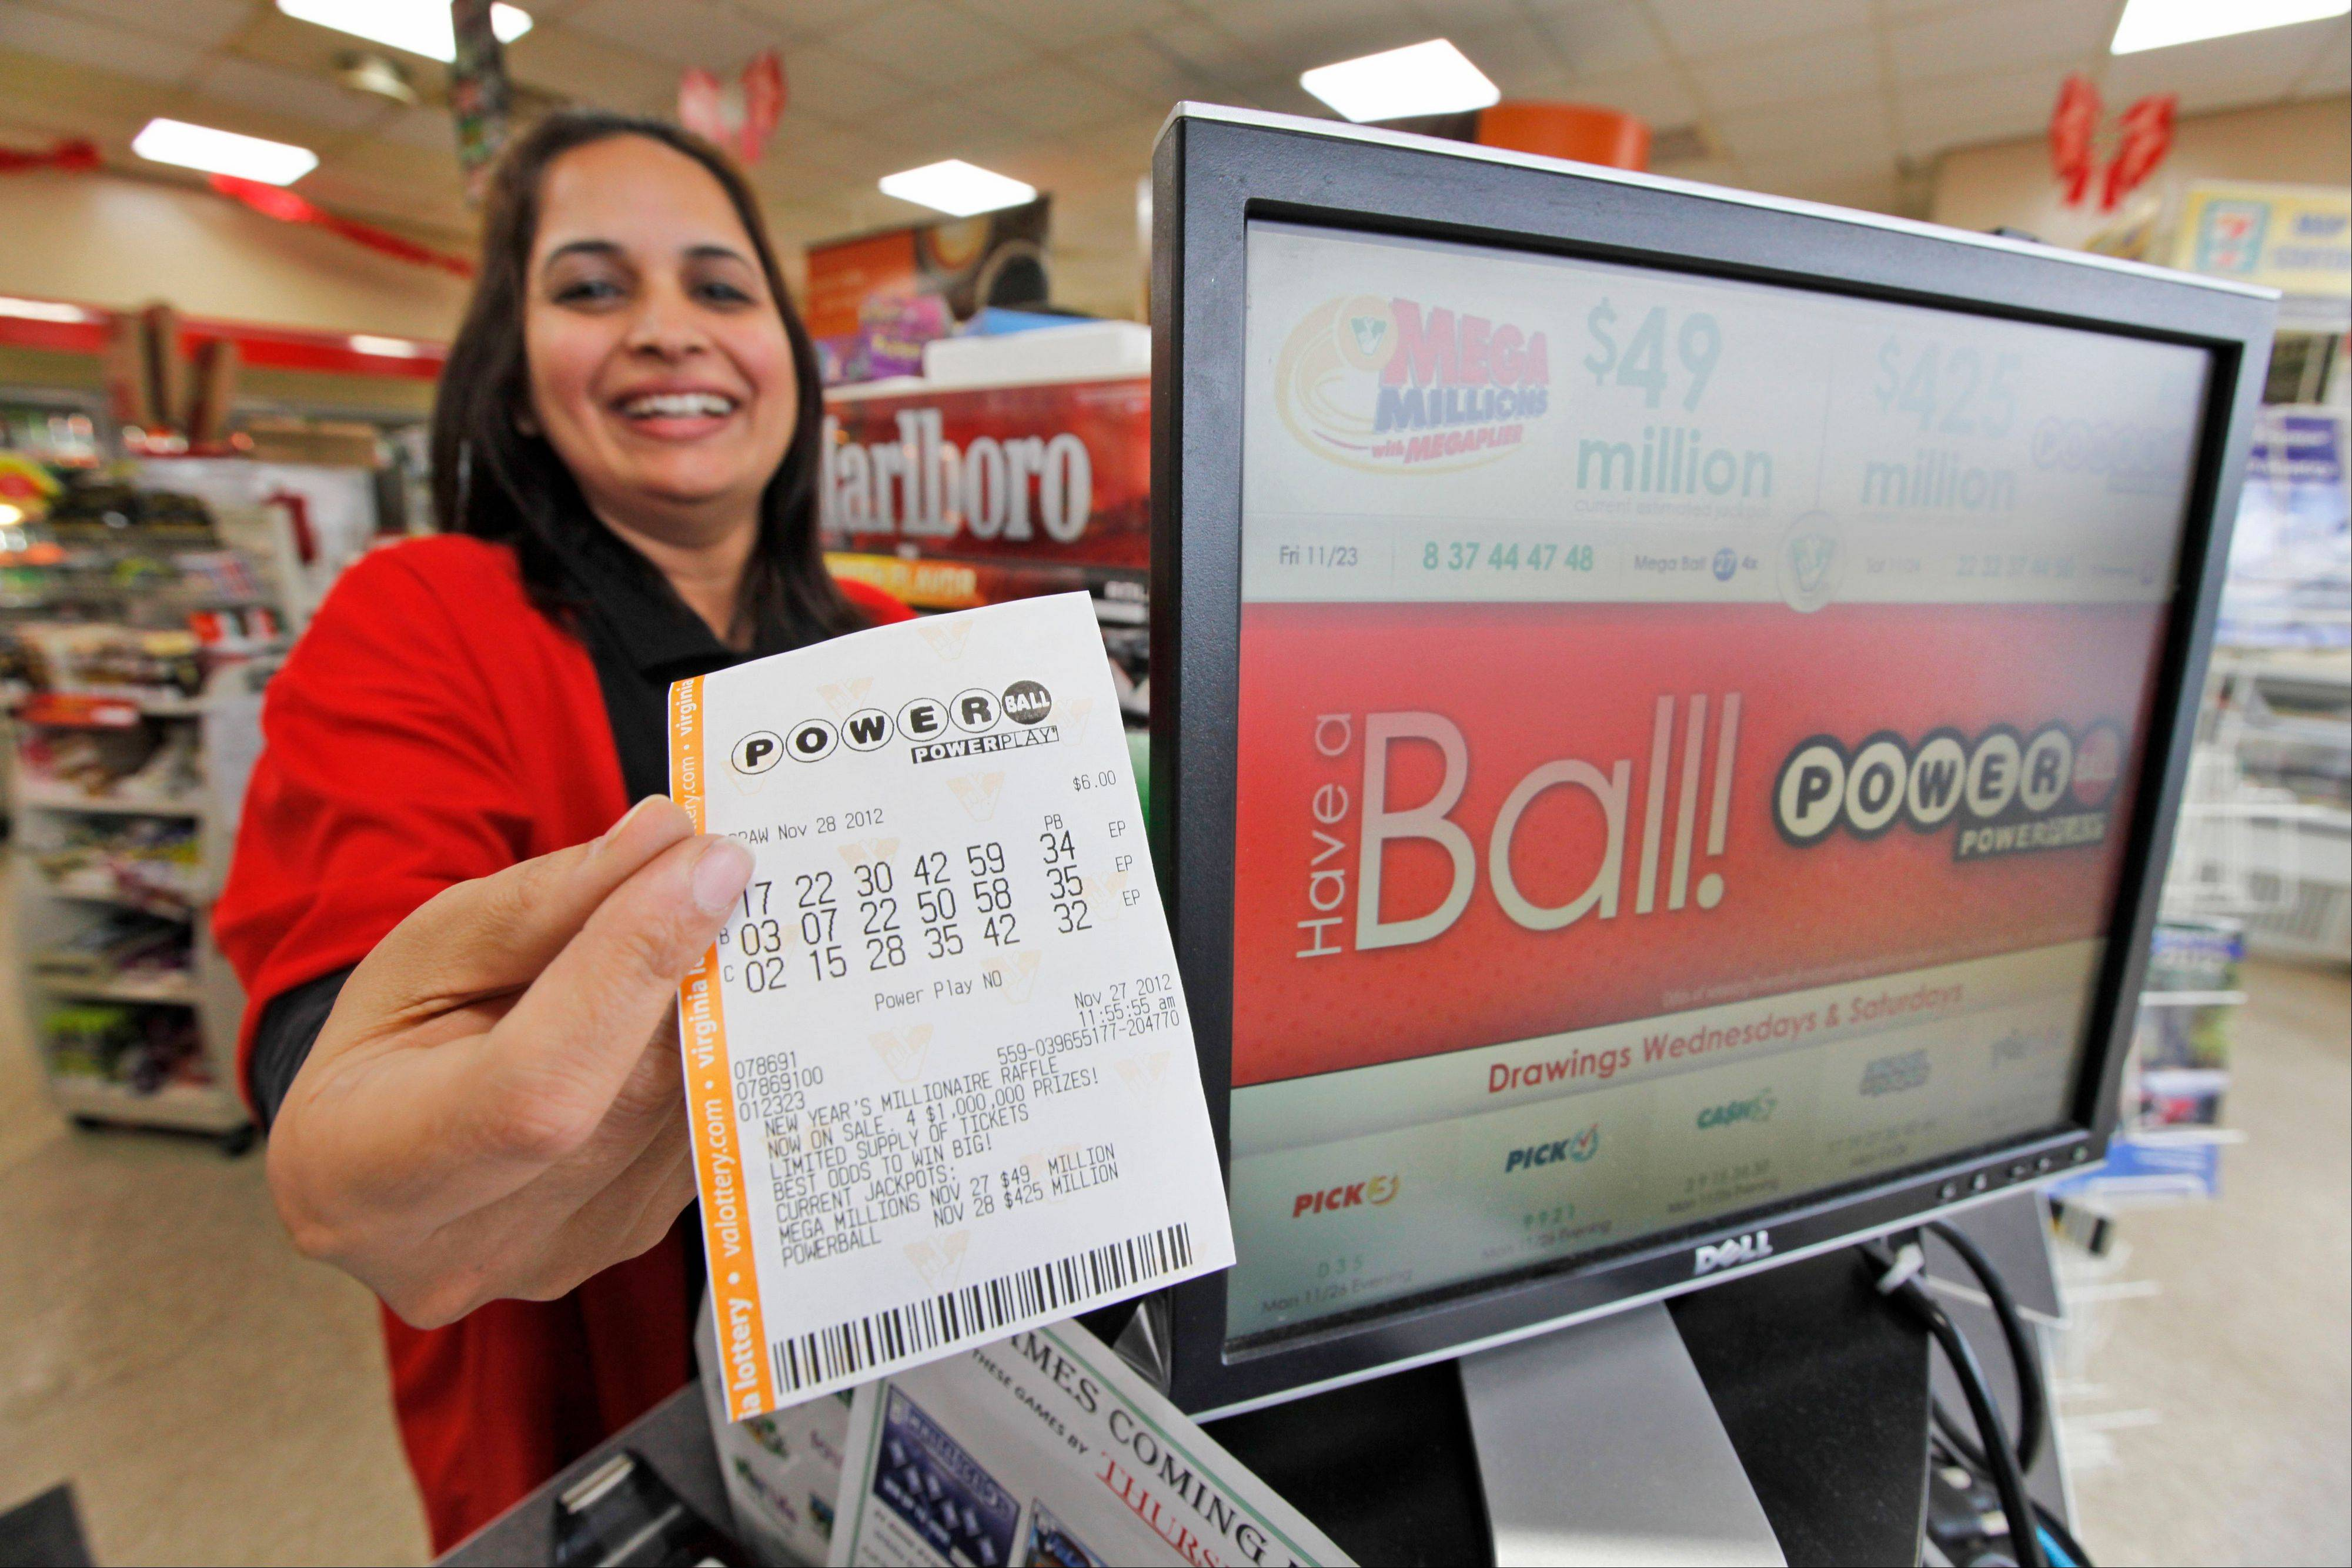 Cashier Farah Husain hands a customer a Powerball ticket at a convenience store Tuesday in Richmond, Va. The powerball jackpot is up over $500 million for Wednesday's drawing.